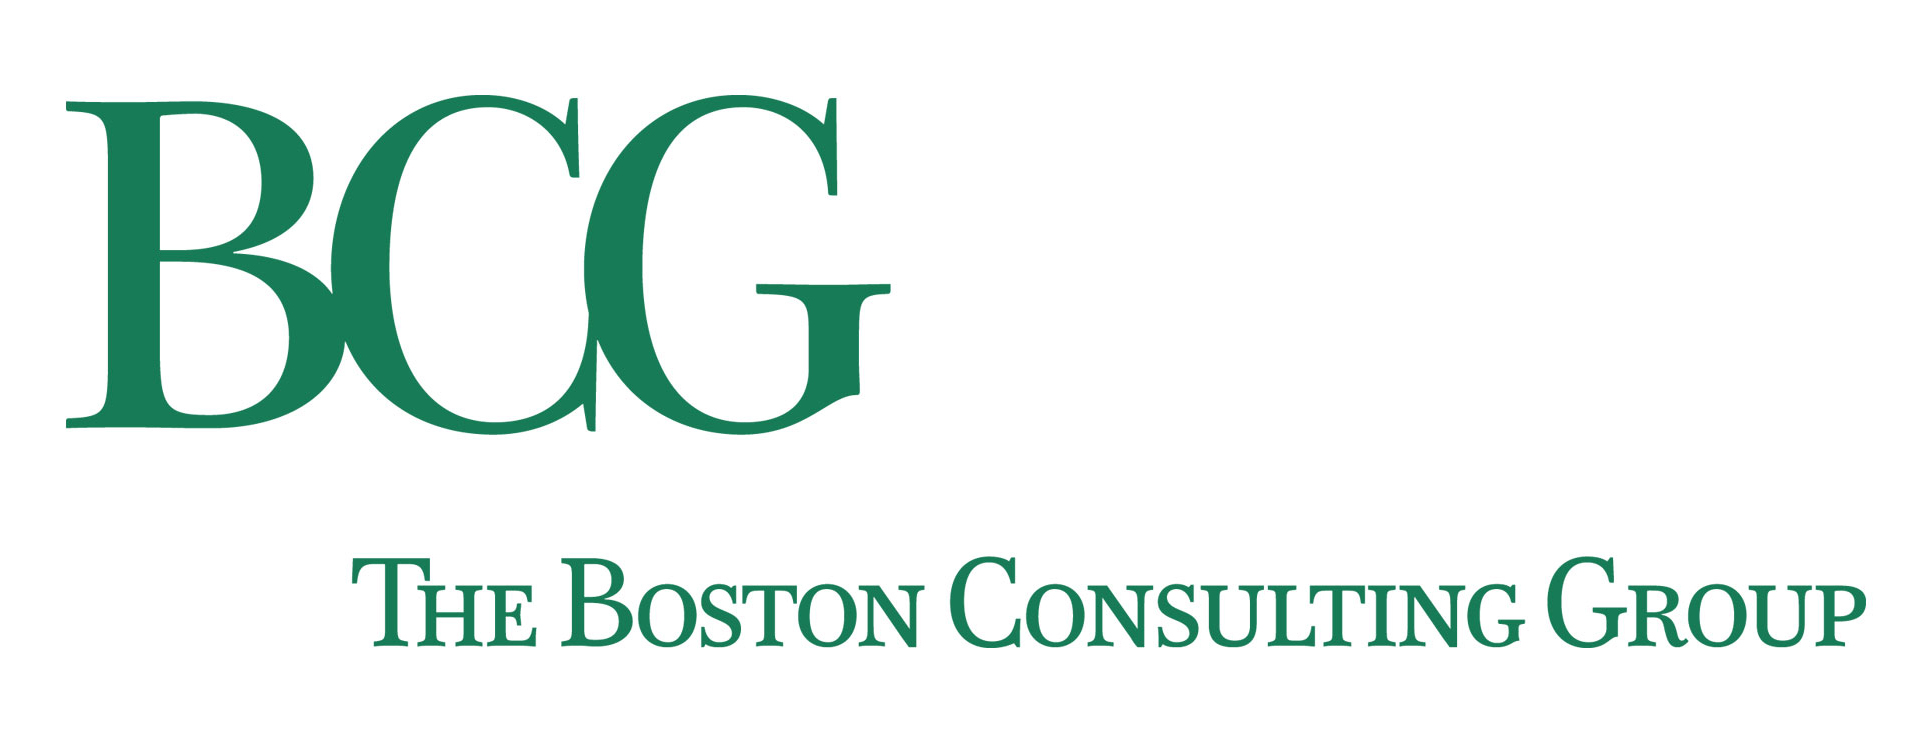 Bcg Information Interactive Case Session Deadline To